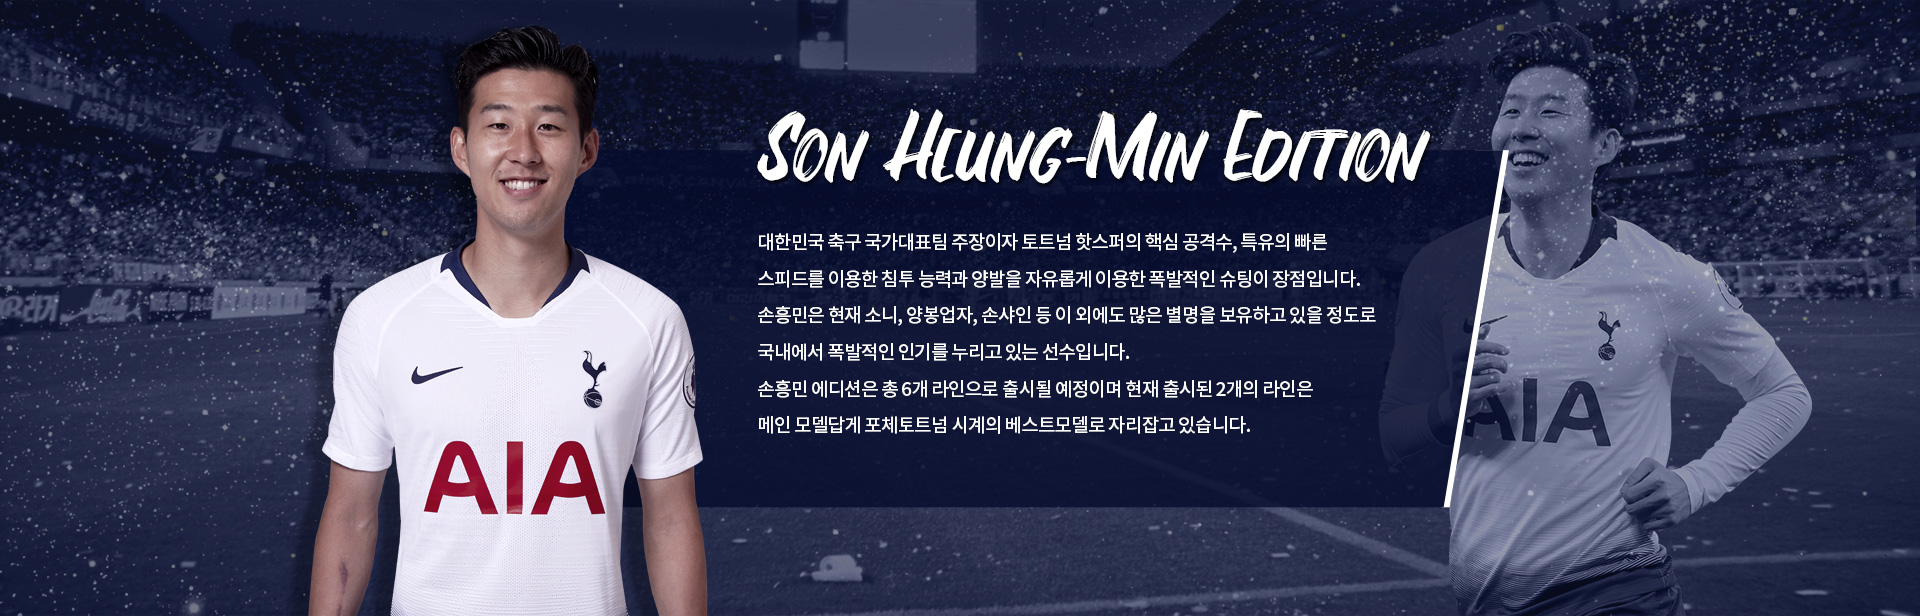 son heung min edition